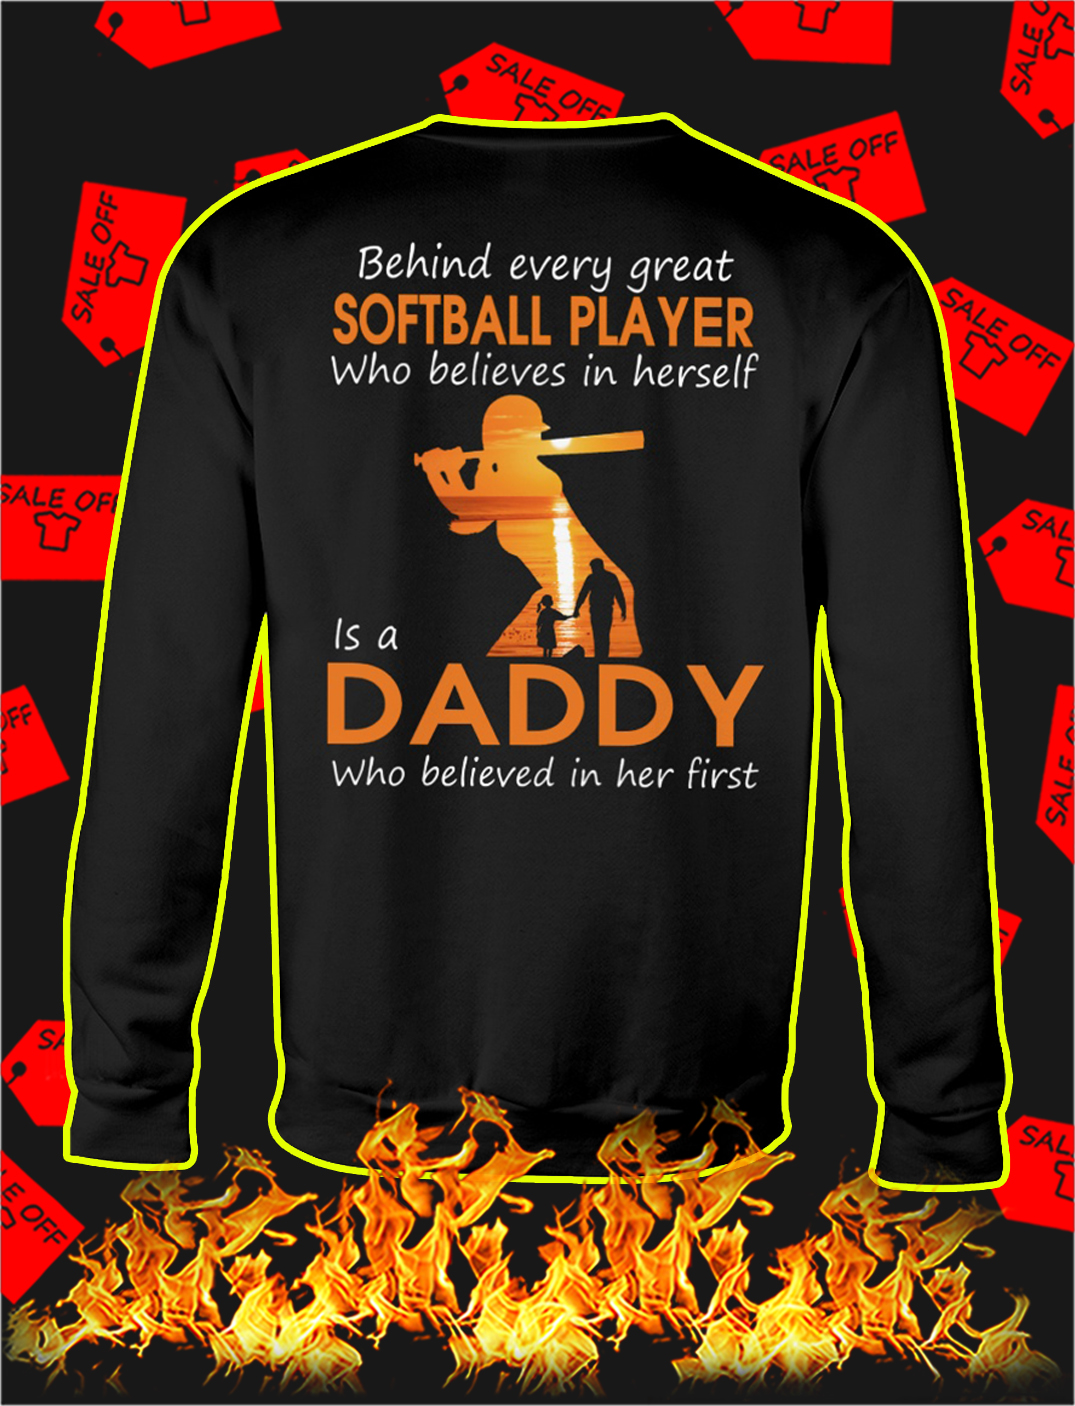 Behind every great softball player who believes in herself is a daddy sweatshirt